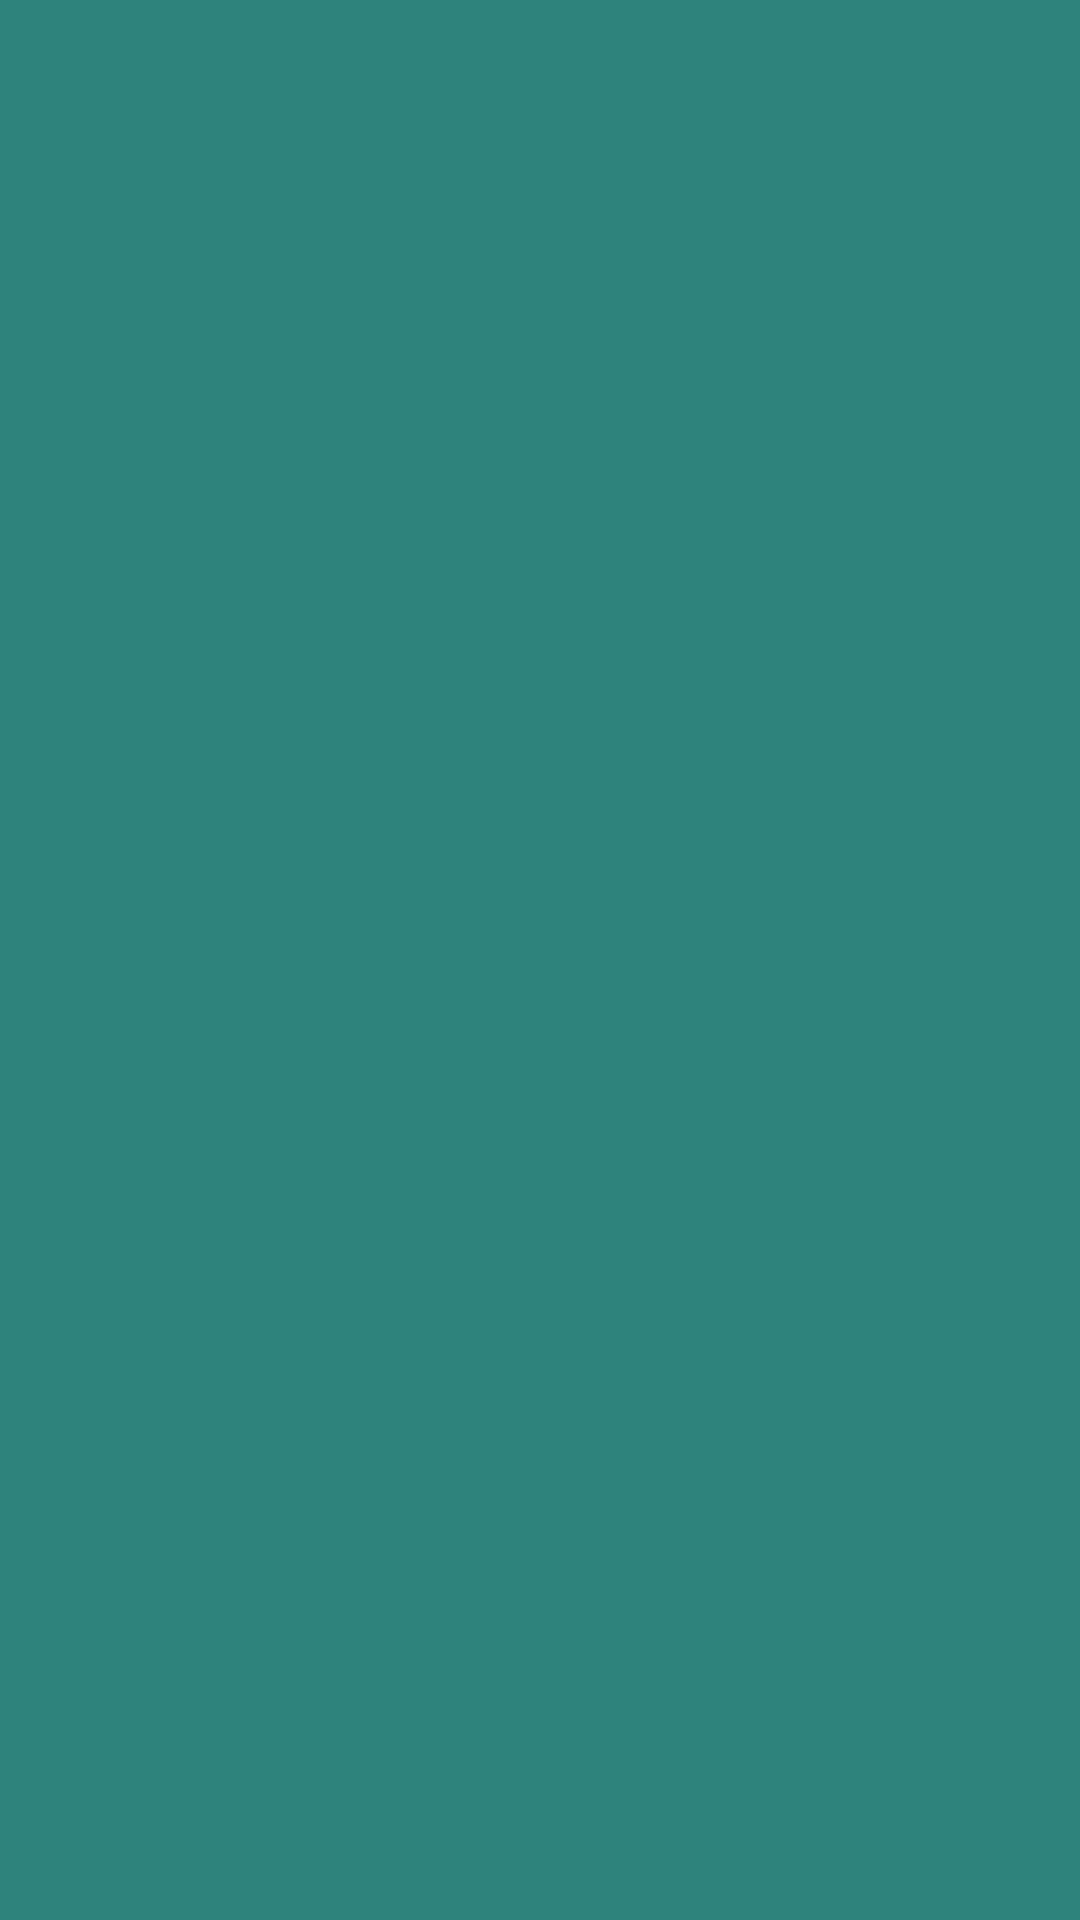 1080x1920 Celadon Green Solid Color Background